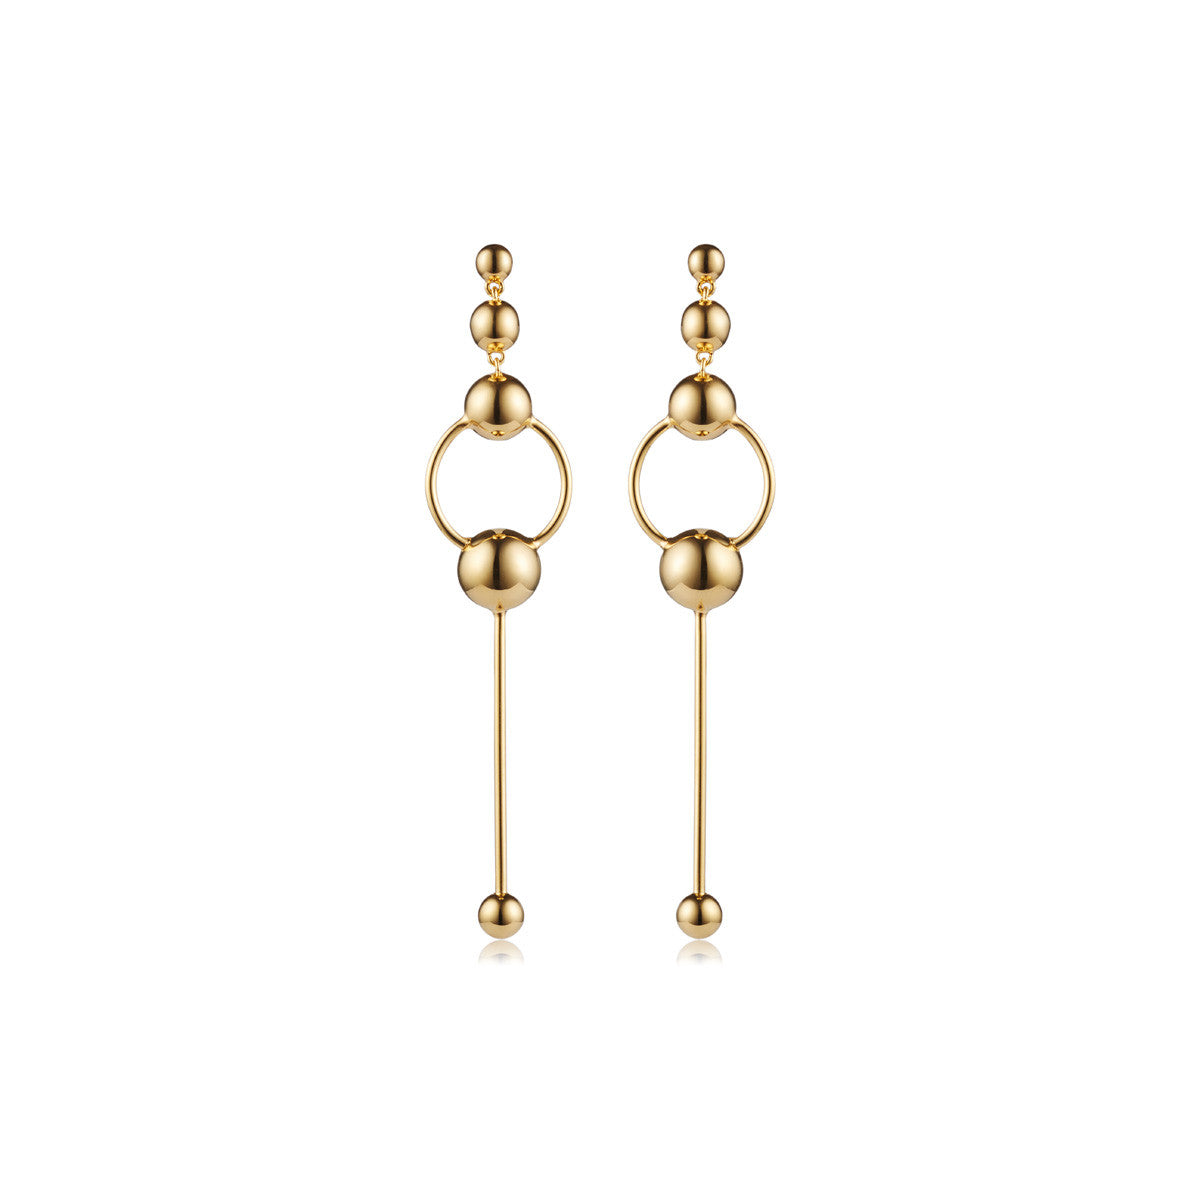 Solid brass, 18K gold plated Orbita earrings with graduating spheres will take you from day to night - front